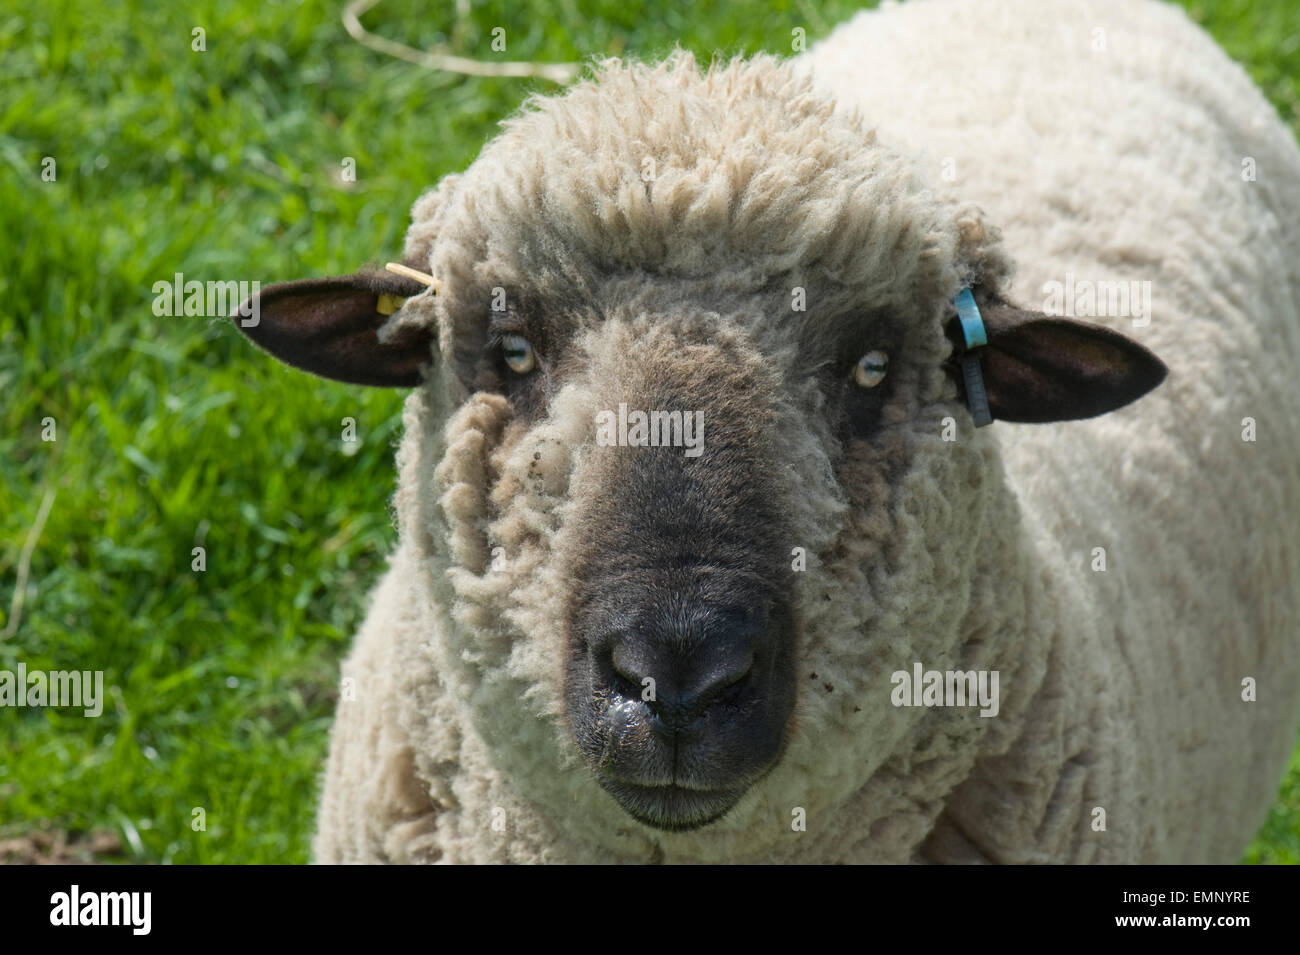 Head of a Hampshire ram looking at the camera - Stock Image